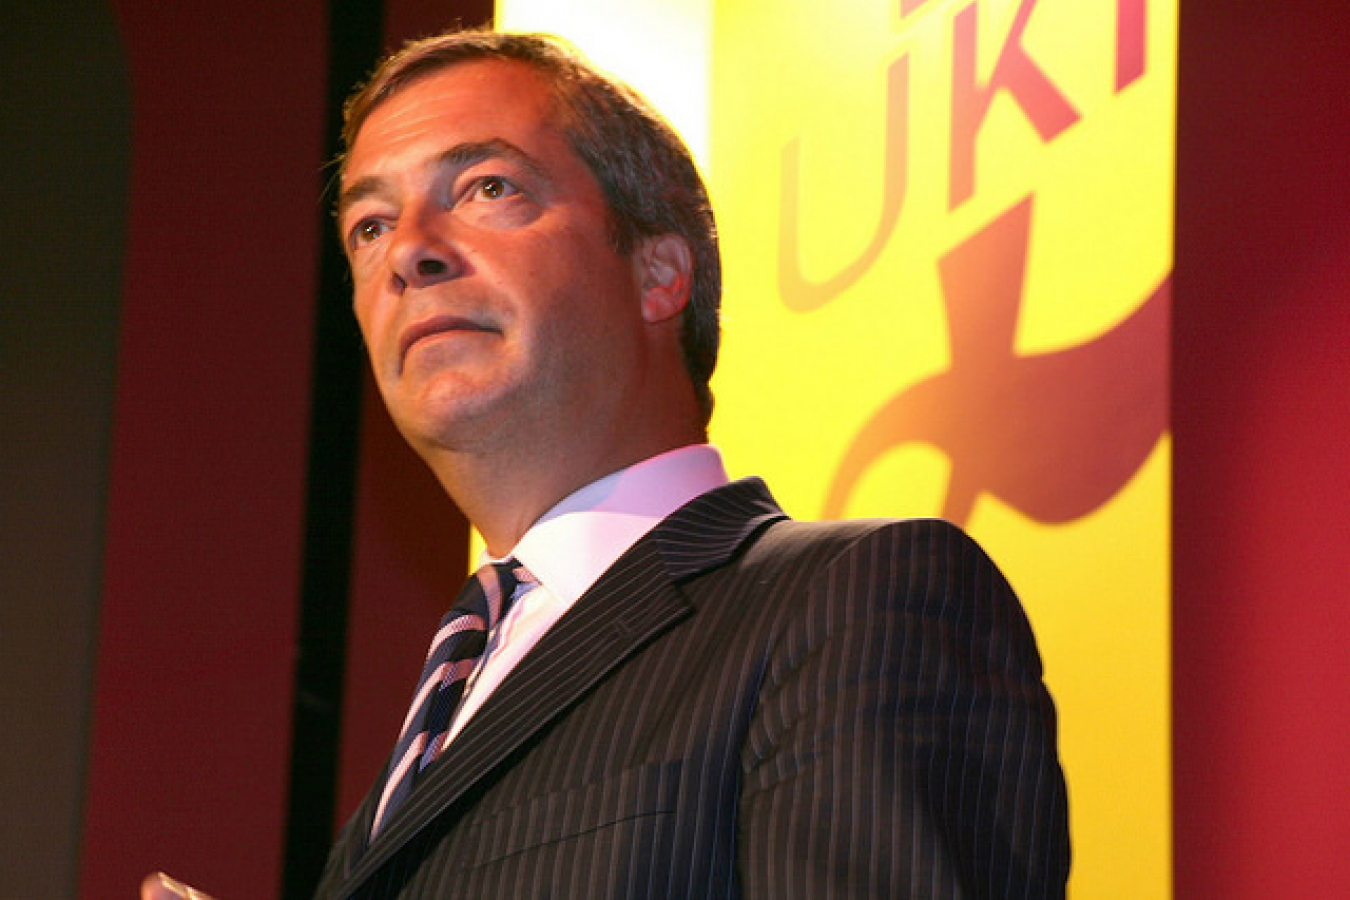 Nigel Farage anti immigration UKIP UK Independence Party doing badly in Opinion Polls